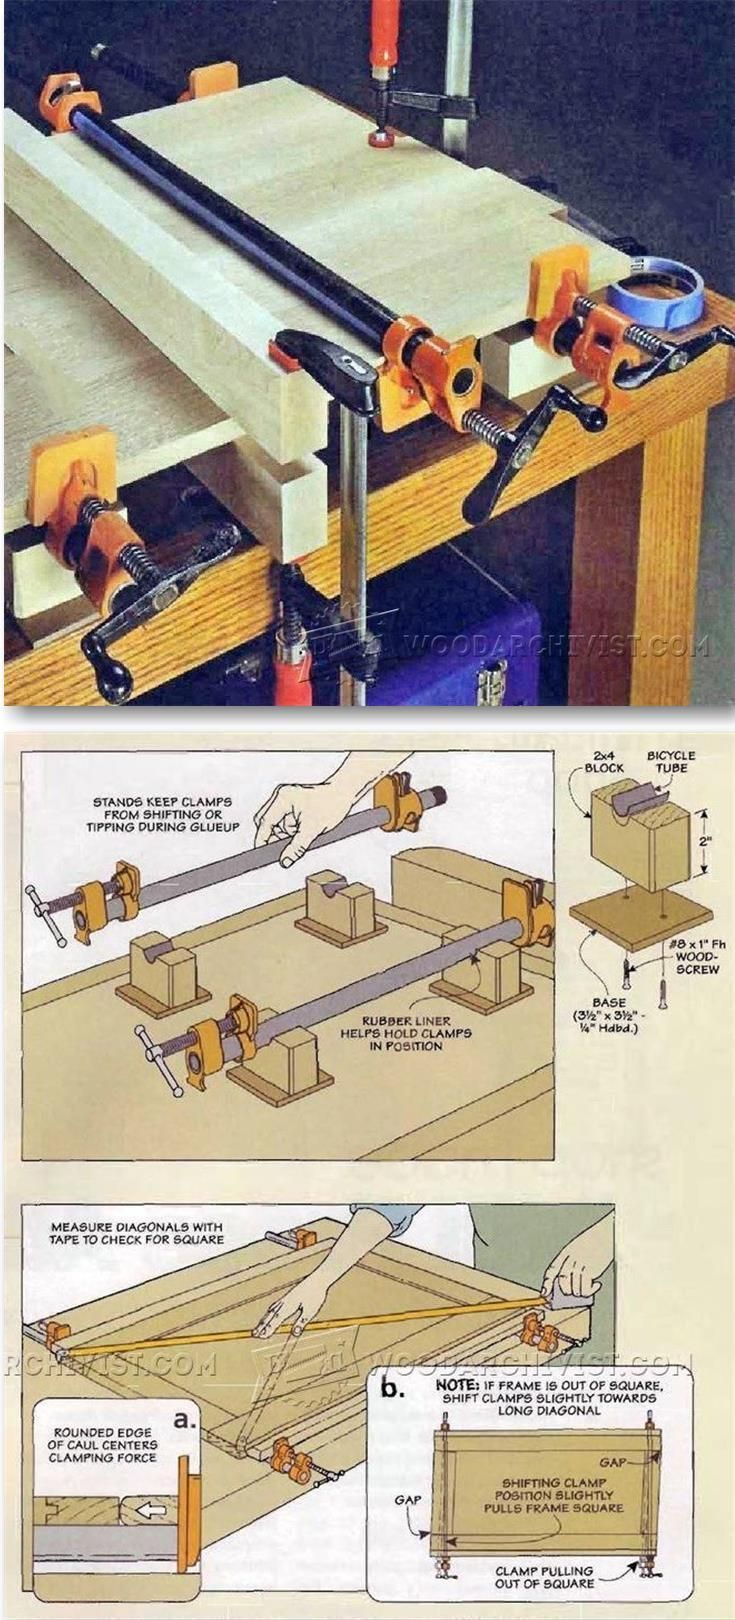 Using Pipe Clamps for Woodworking - Clamp and Clamping Tips, Jigs and Fixtures   WoodArchivist.com